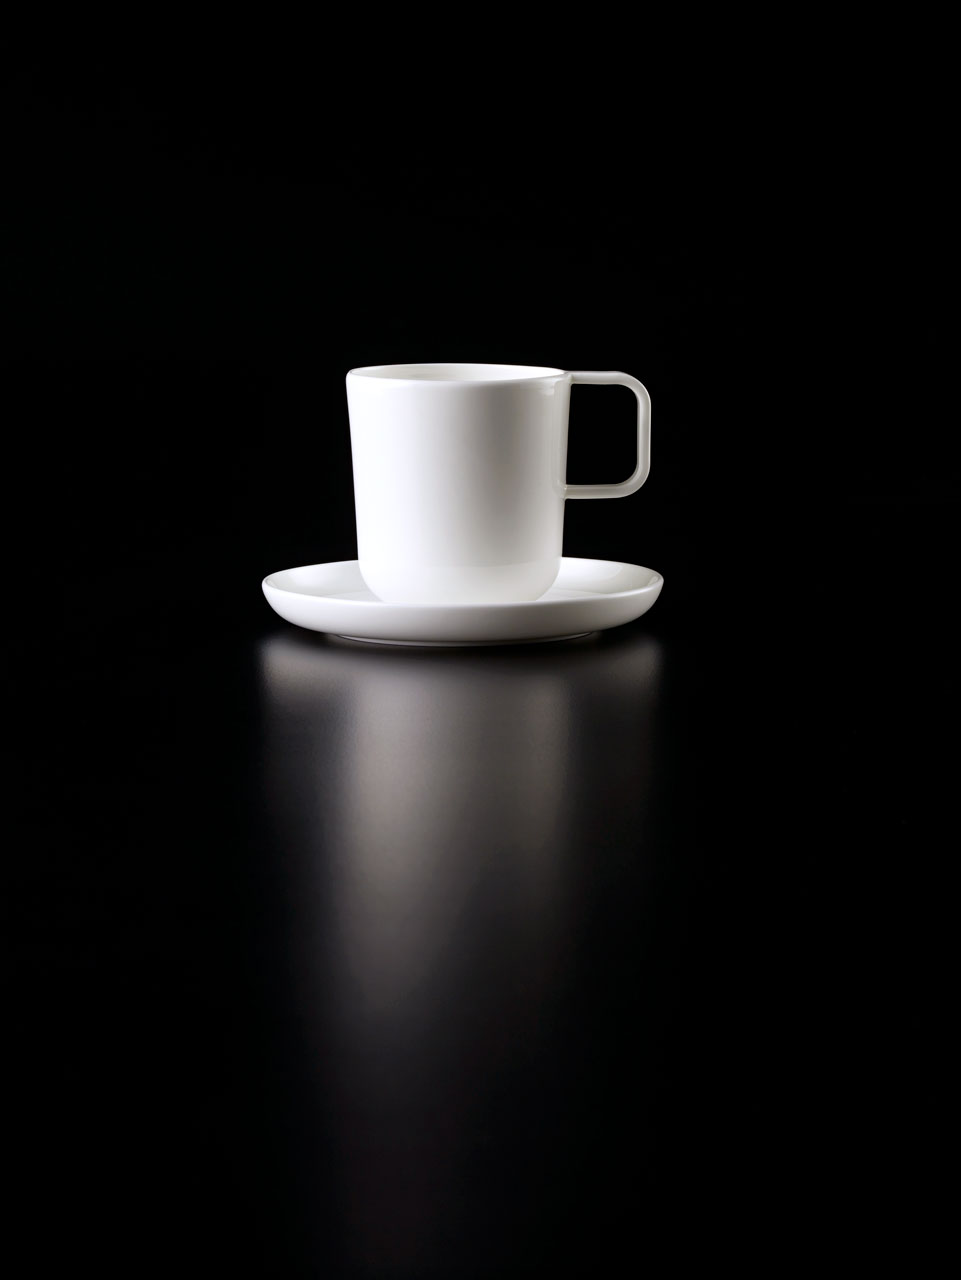 Bent Brandt - TABL white bone china S2 cmug on S2 saucer